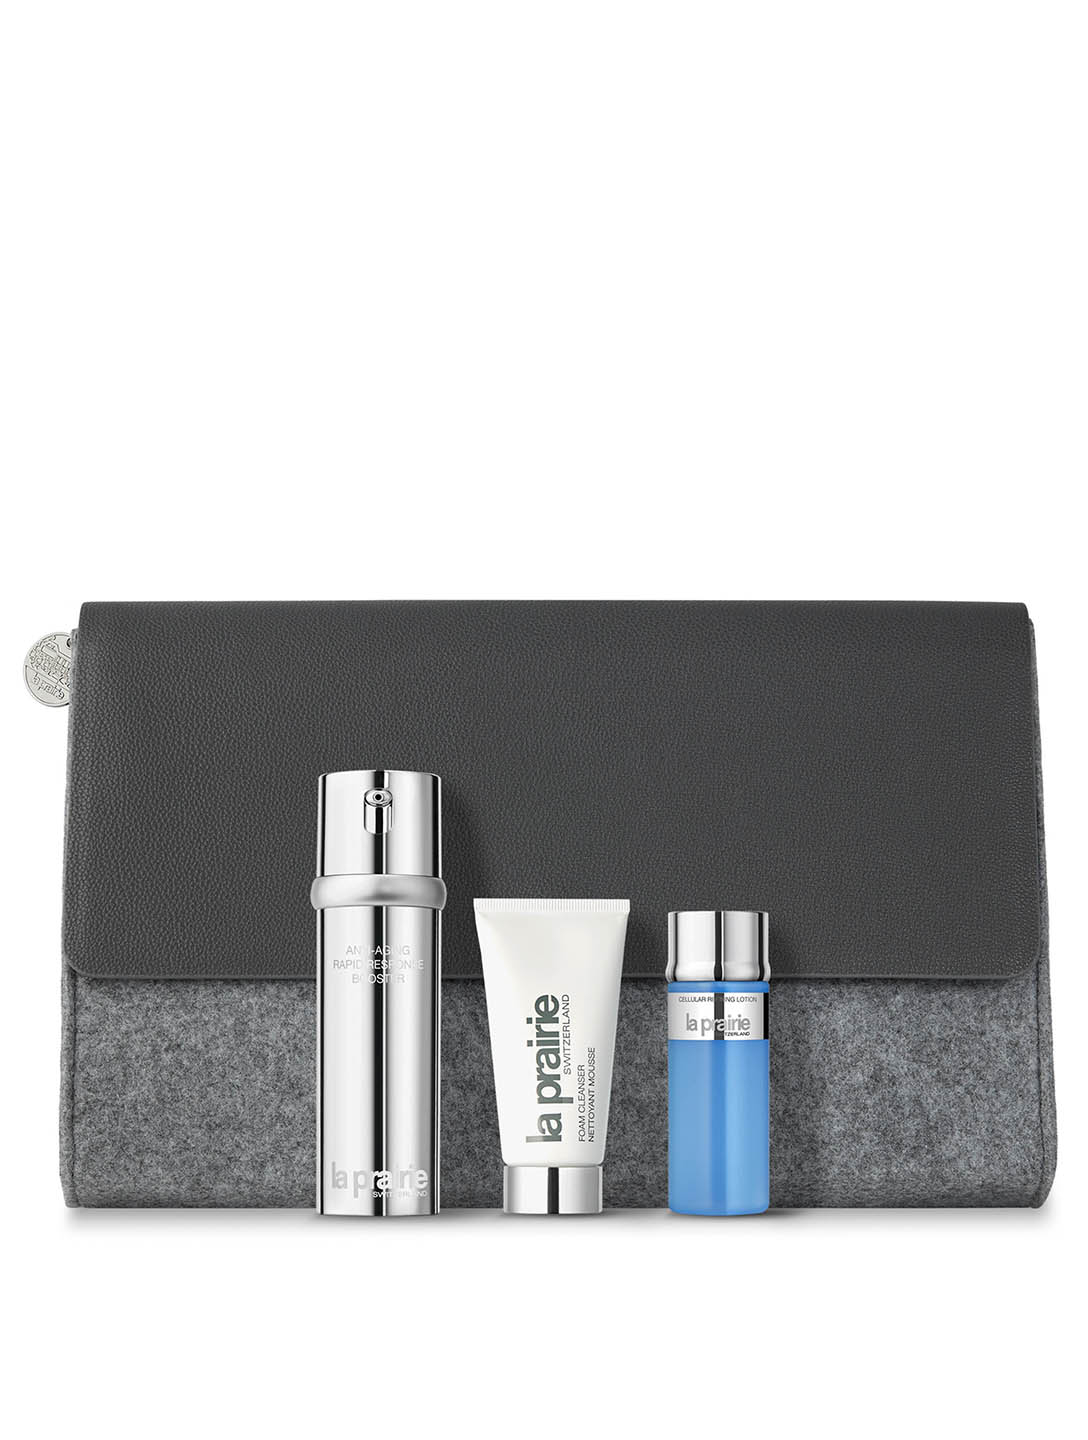 LA PRAIRIE Anti-Aging Essentials Set Beauty